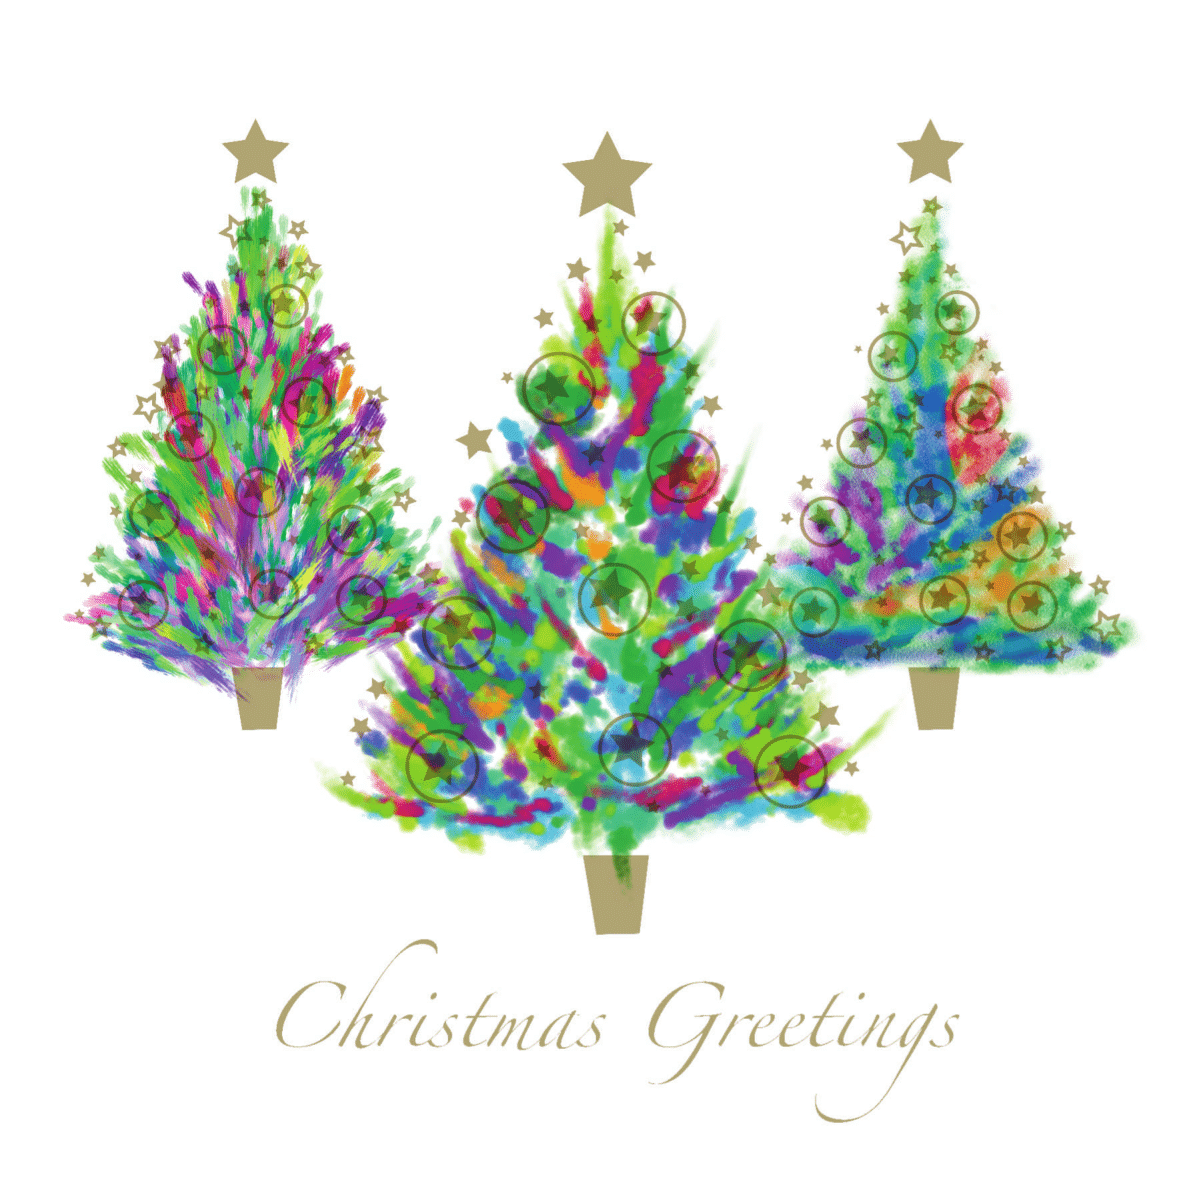 Christmas Card Design.Three Trees Pack Of 10 Christmas Cards With Envelopes